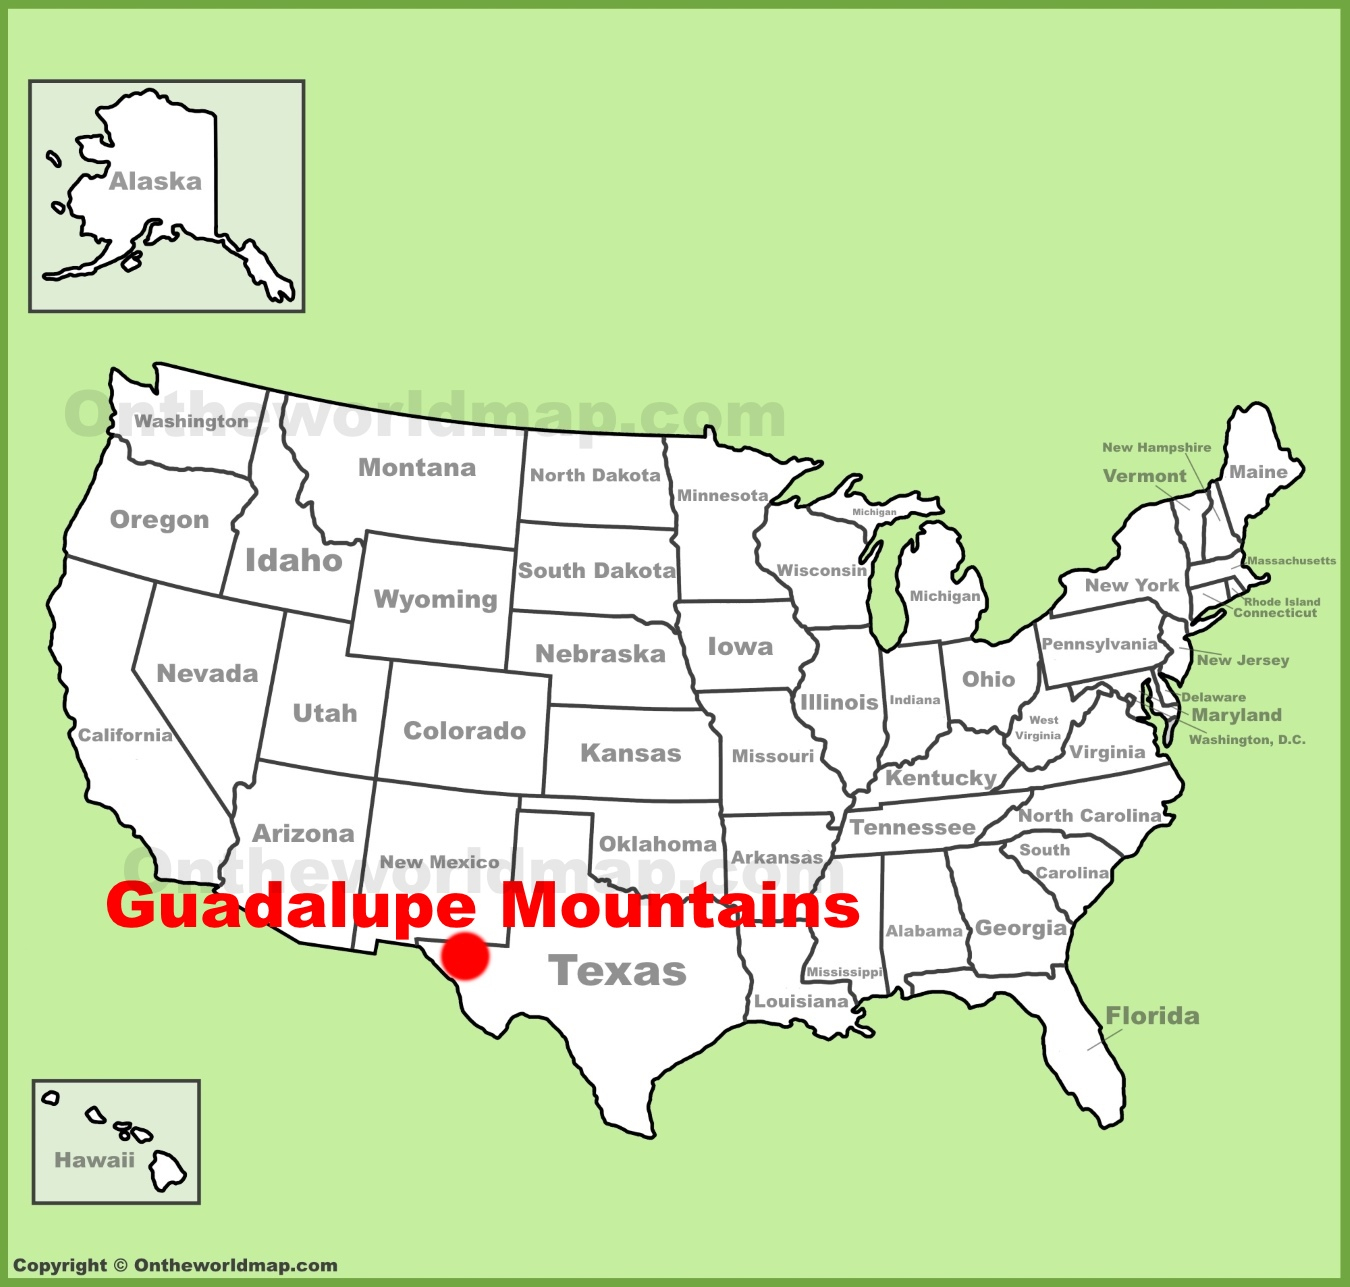 Guadalupe Mountains Location On The U.s. Map - Guadalupe California Map